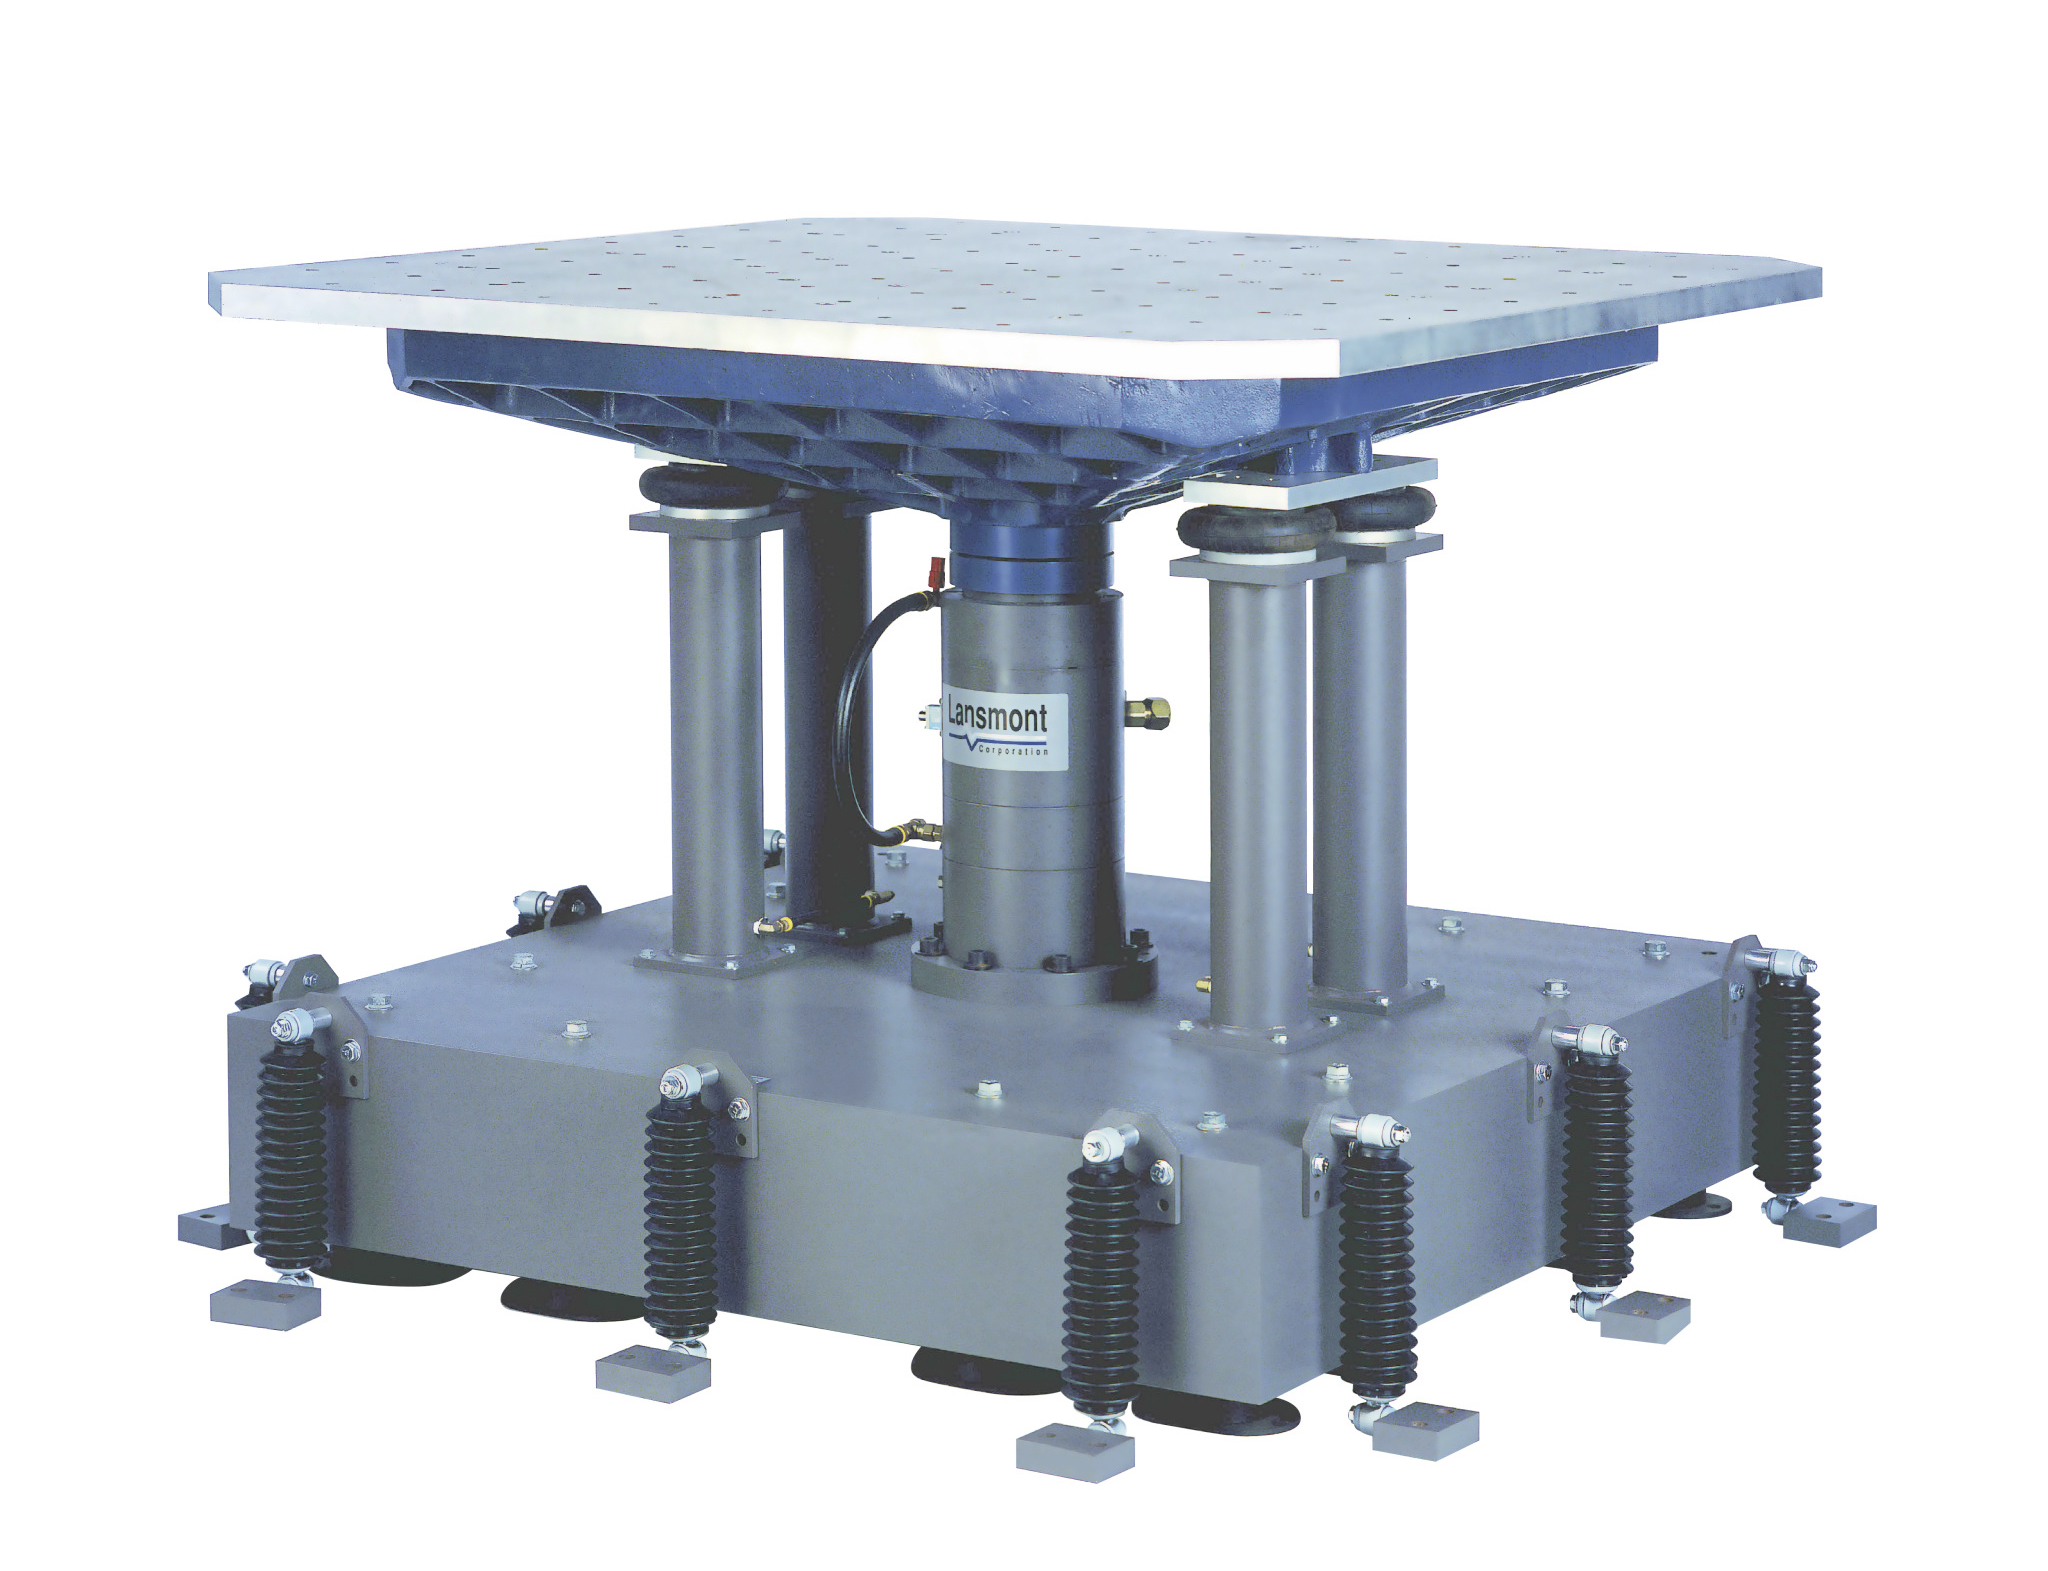 Model 7000 vibration test system lansmont corporation for Decor systems